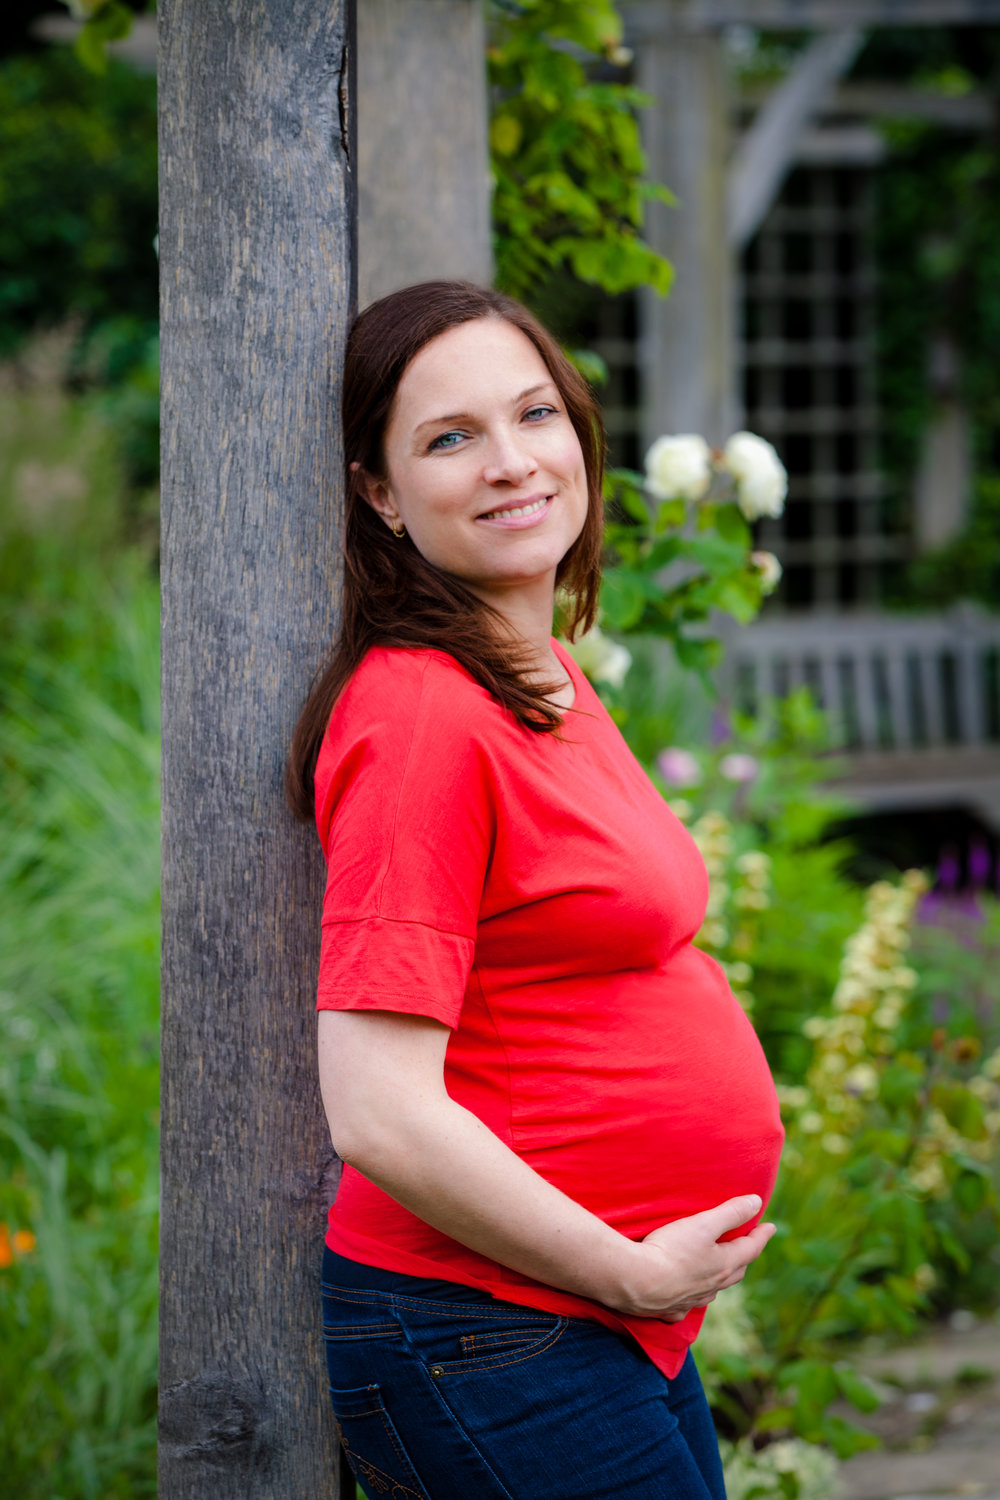 Maternity photography on location, Brockwell Park, Herne Hill, London